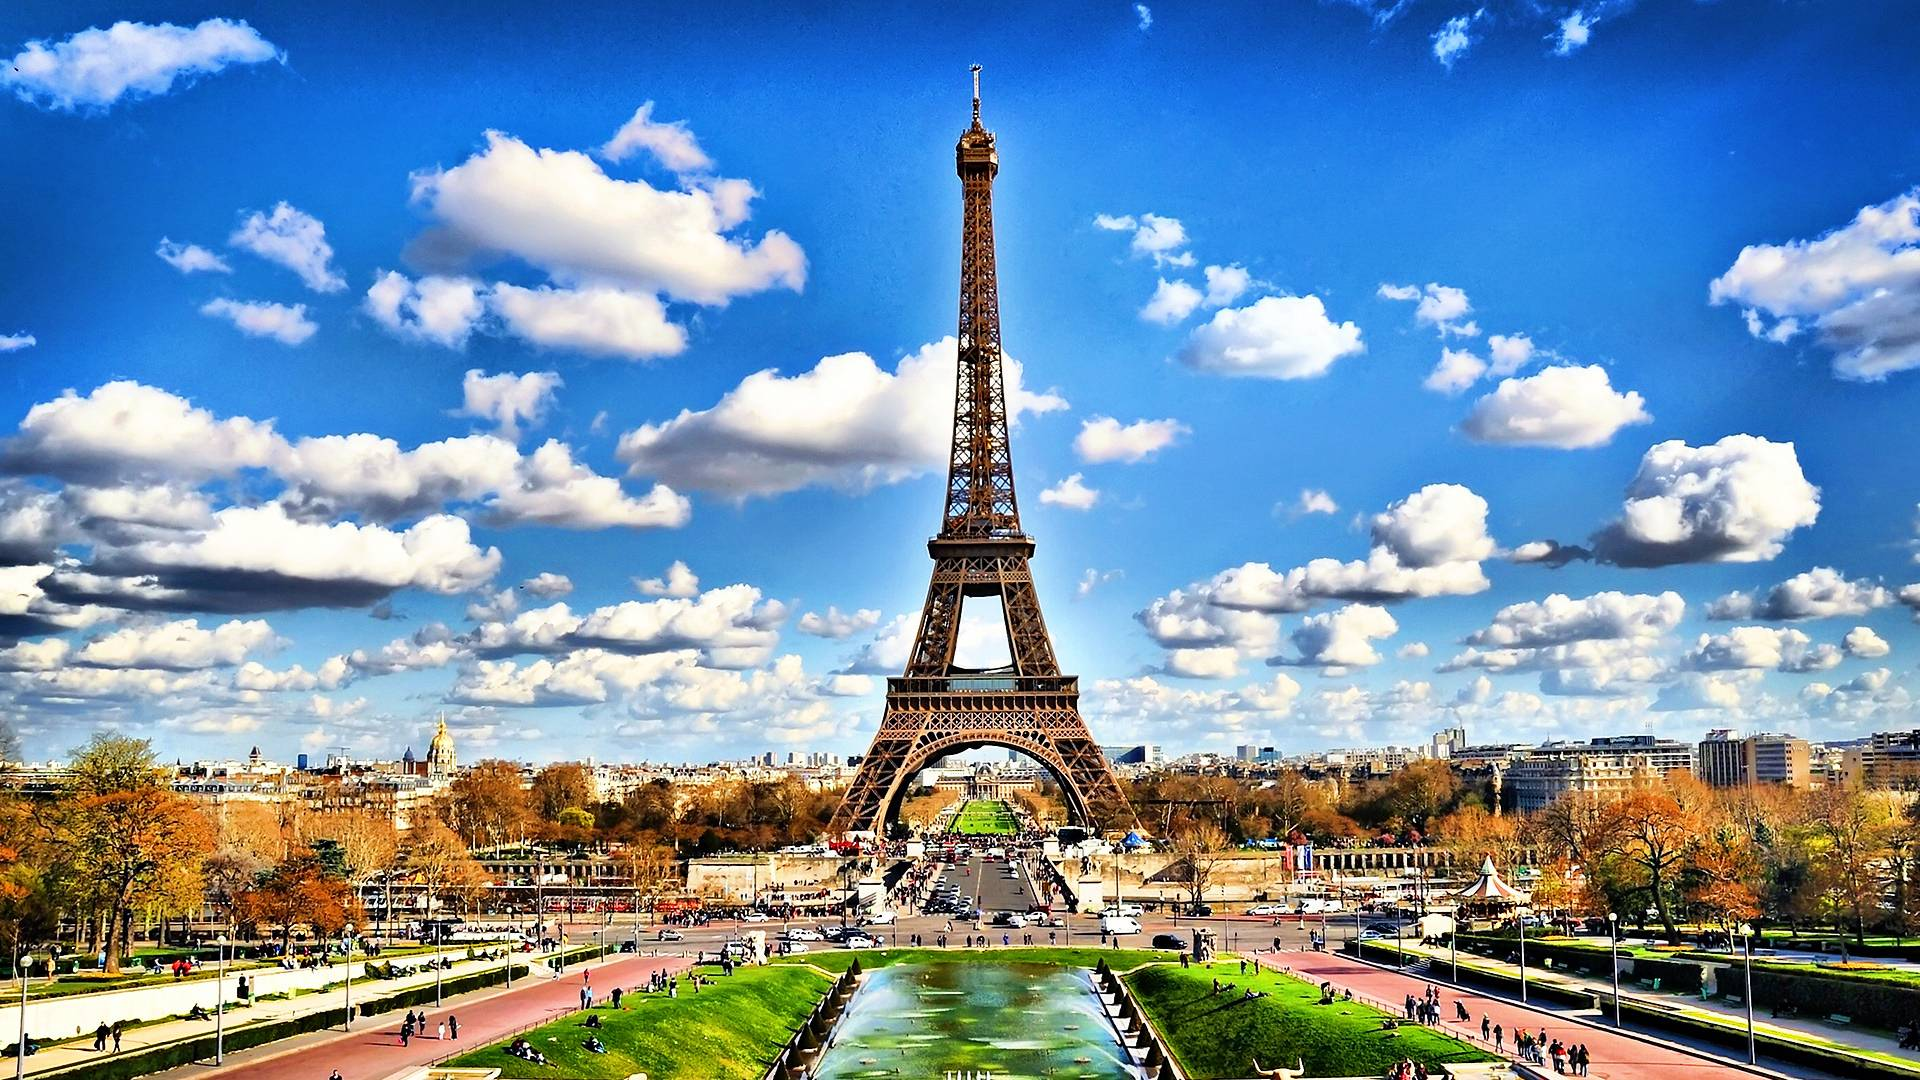 eiffel tower wallpaper - photo #7